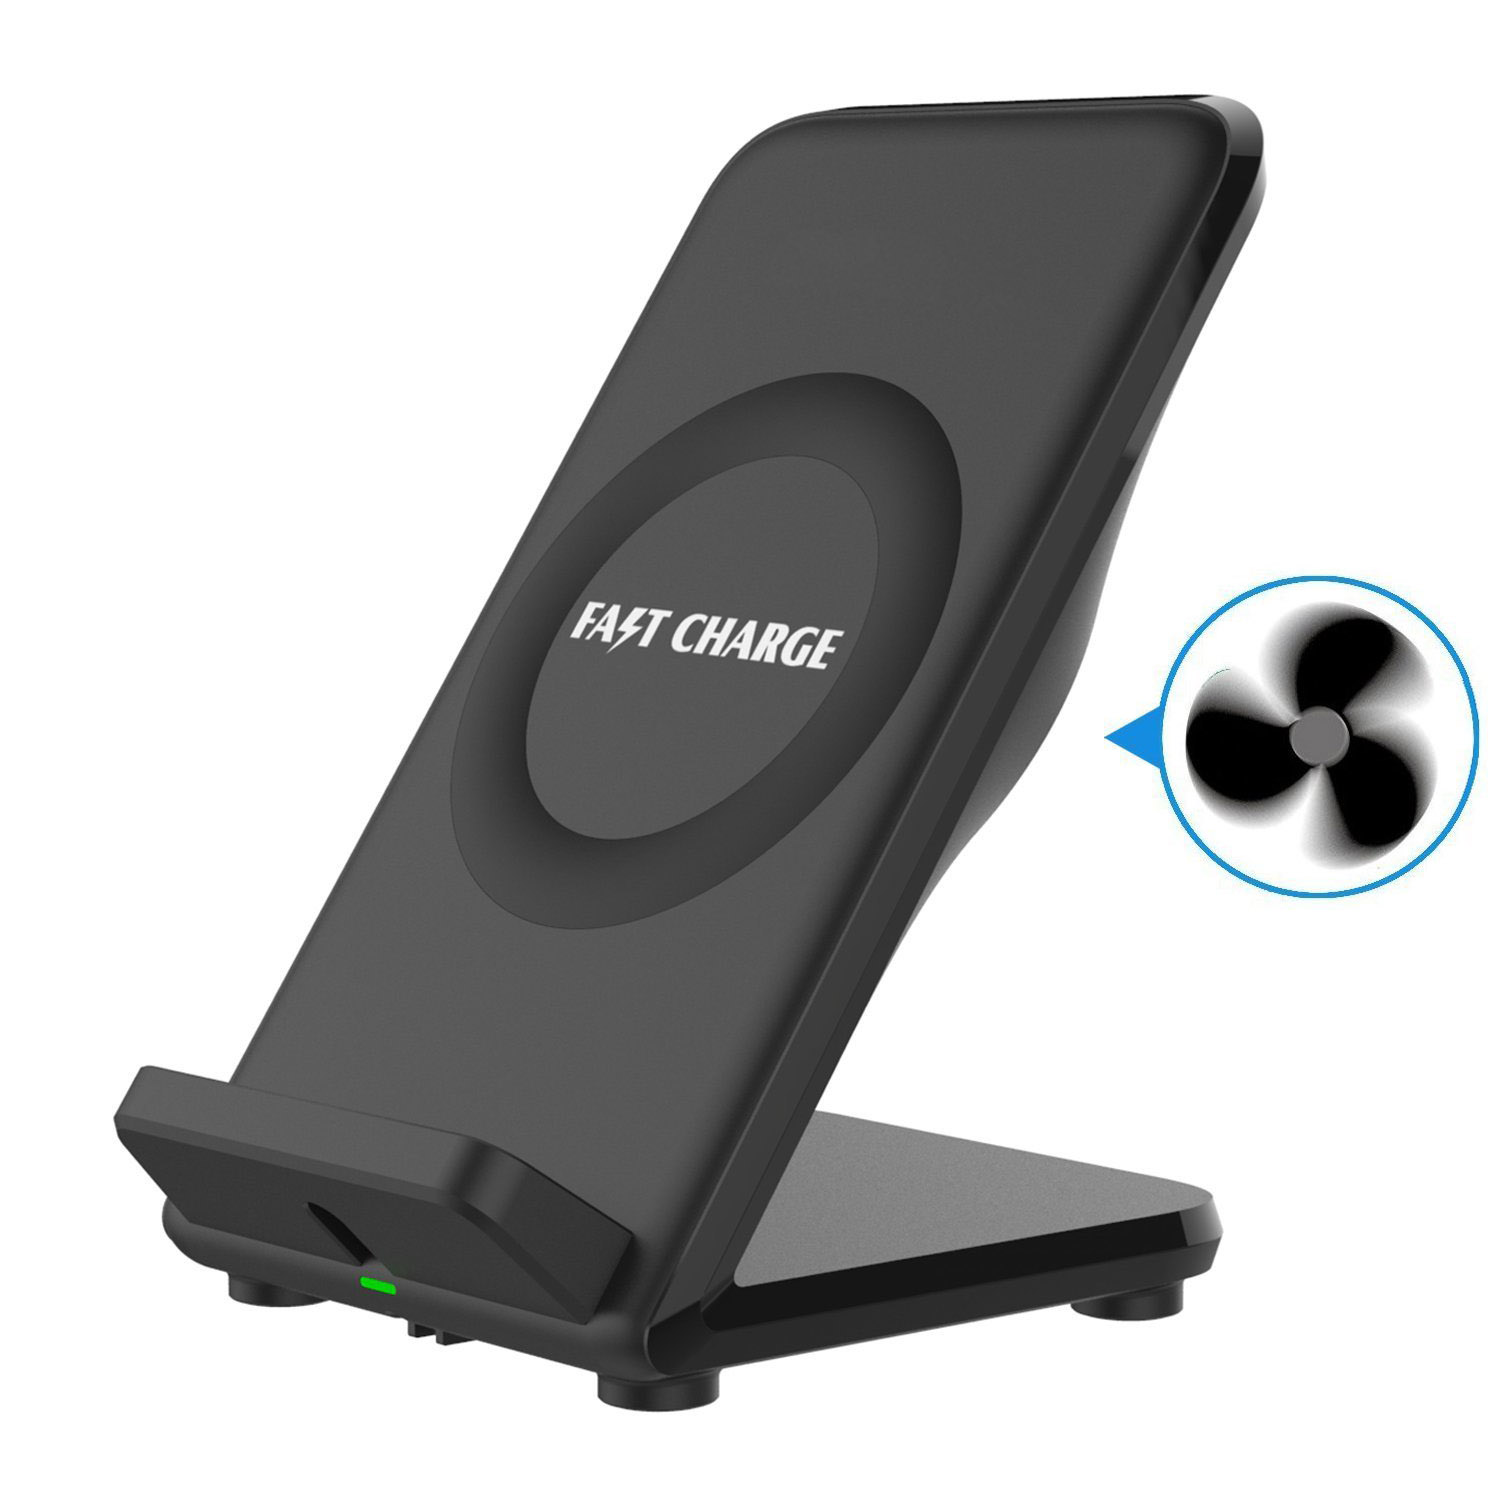 Fast QI Wireless Charging Station & Cooling Fan Charger Dock Stand Quick Charge Pad for for Samsung Galaxy S9/S8/S8+/S7/S7 Edge/S6/S6 Edge Plus/Note 9 8 5,iPhone X/8/8 Plus